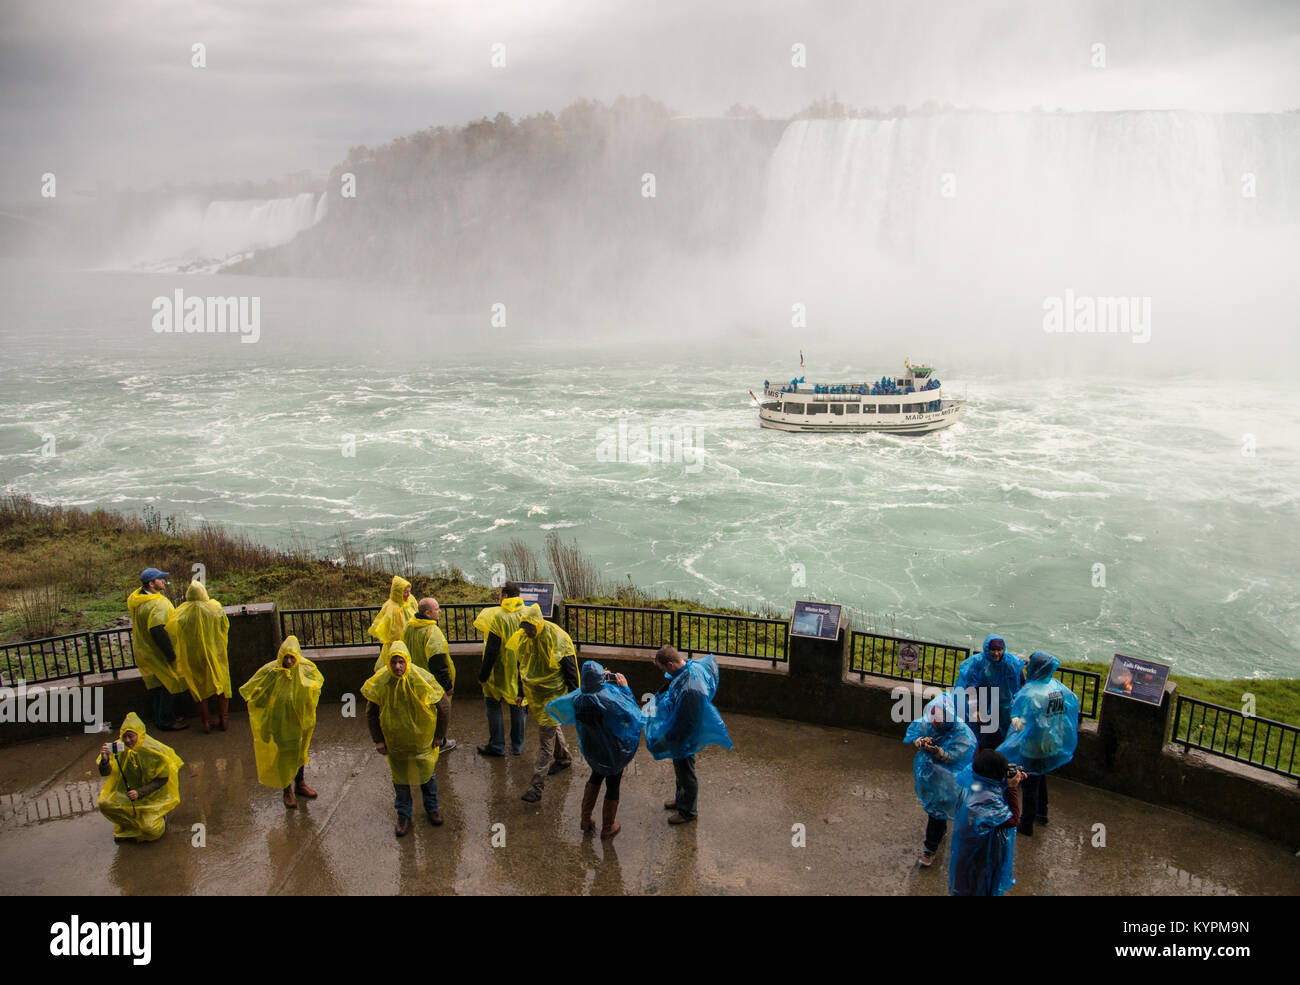 Maid of the Mist in Niagara River from viewing platform at Journey Behind the Falls attraction in Niagara Falls, - Stock Image